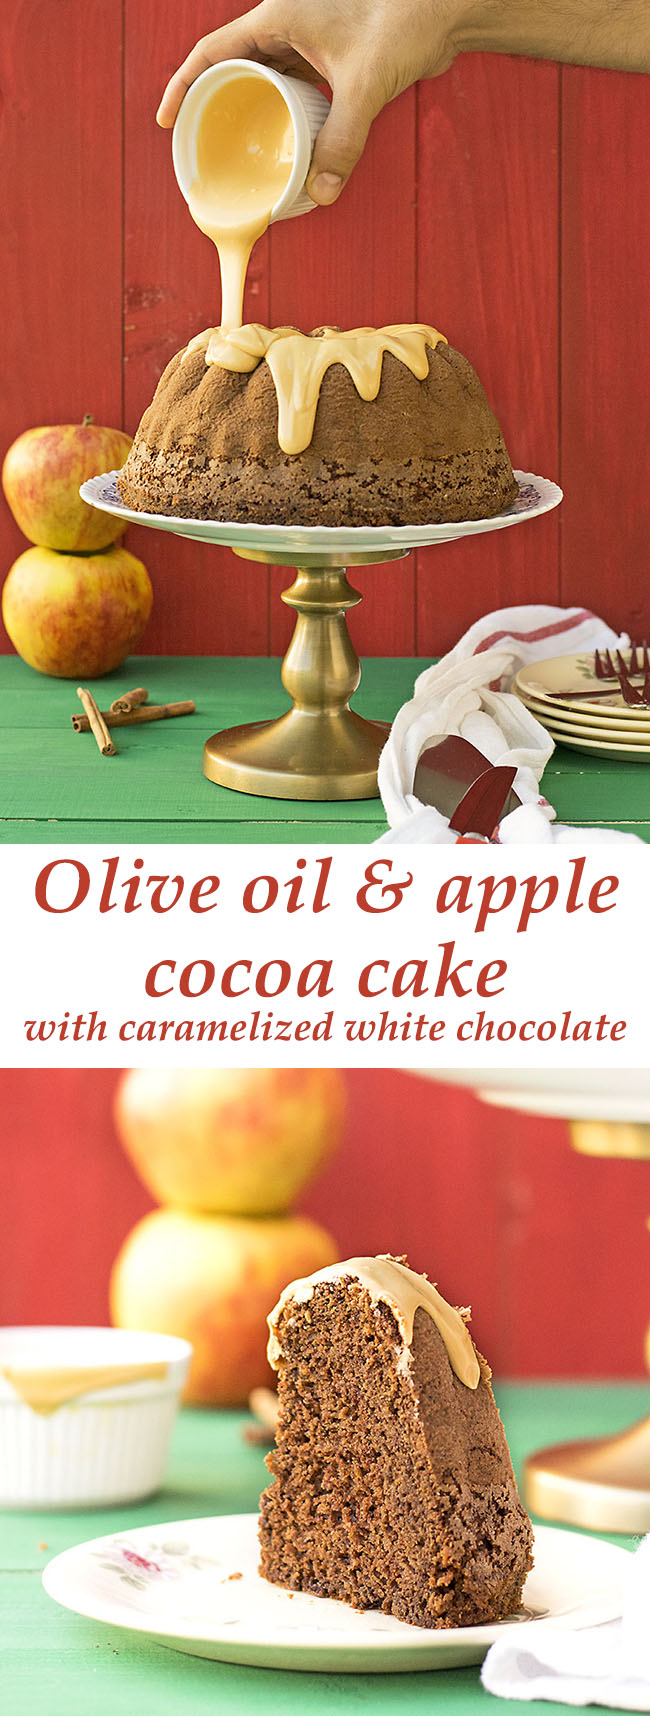 Olive oil and apple cocoa cake with caramelized white chocolate